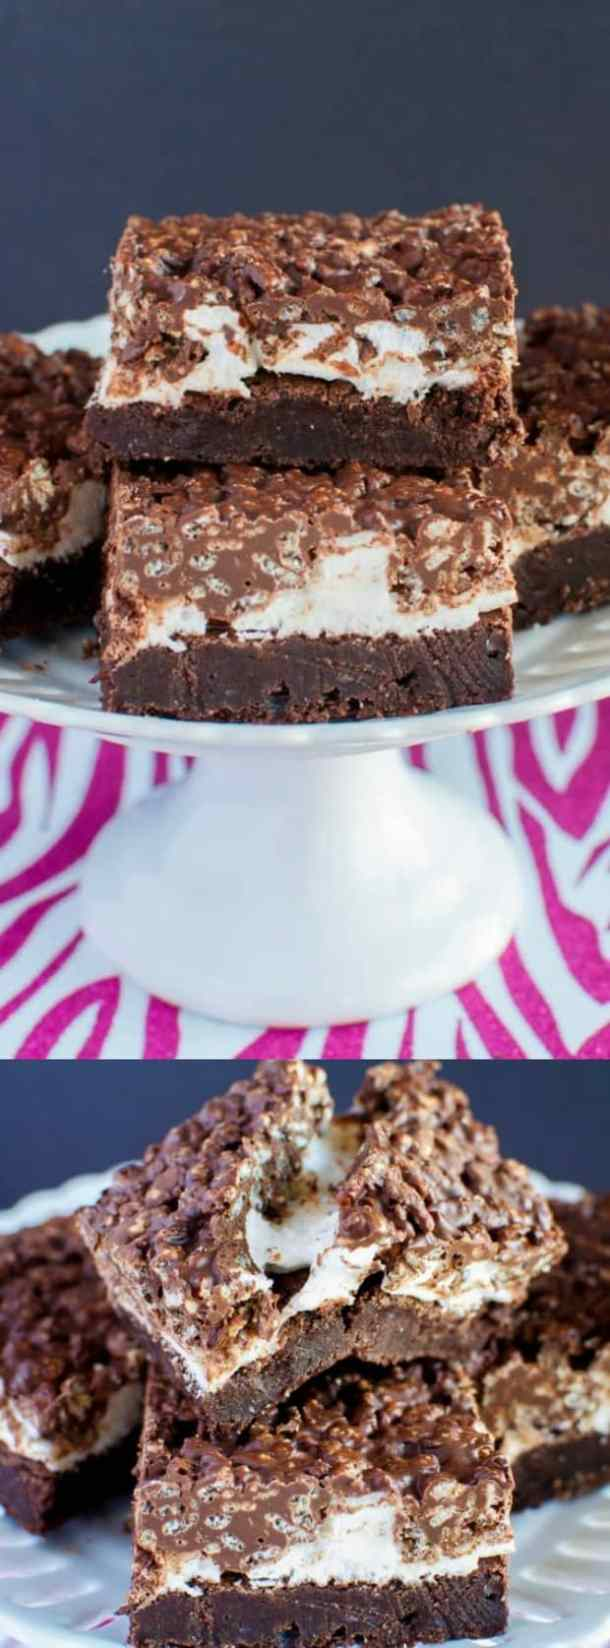 Marshmallow Fudge Crunch Brownies